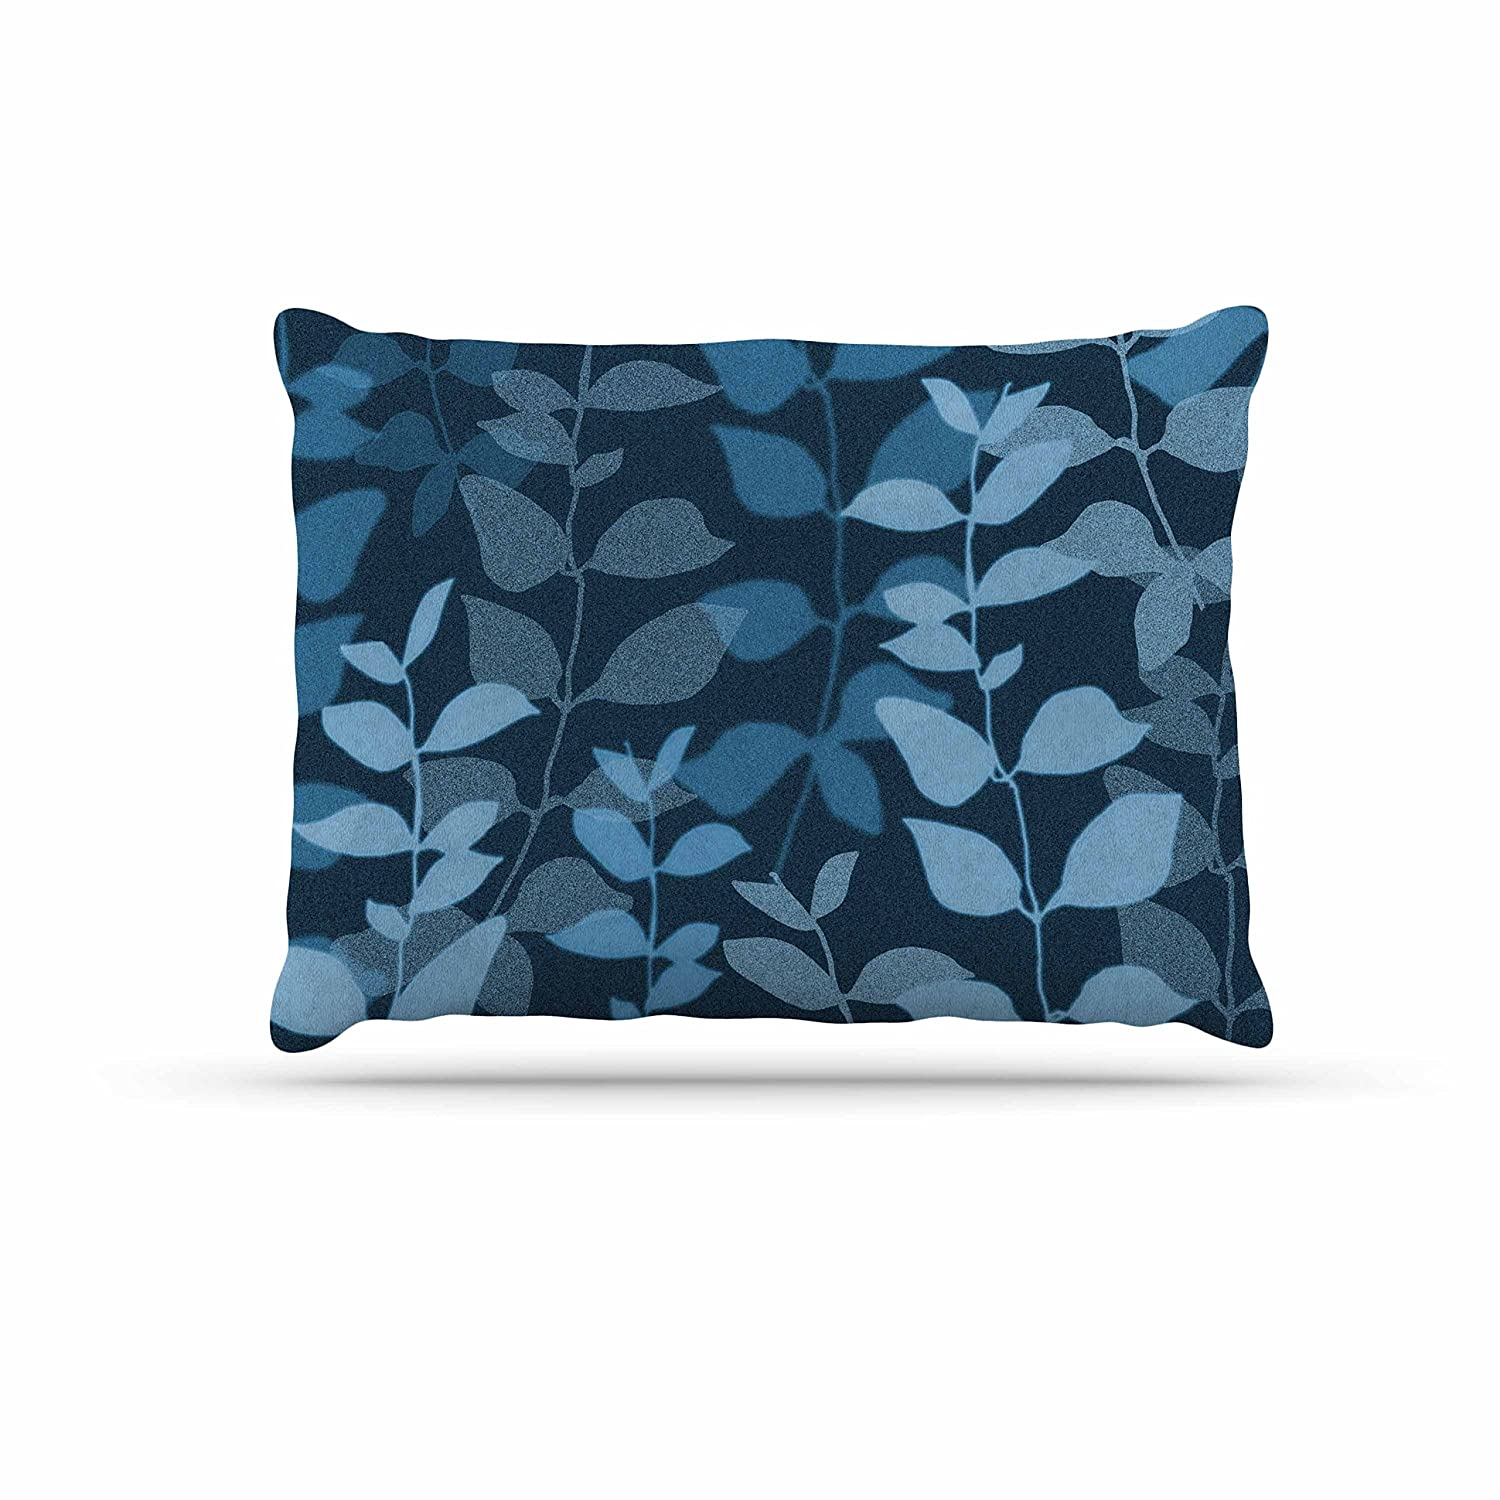 KESS InHouse Carolyn Greifeld Leaves of Dreams bluee Dog Bed, 30  x 40